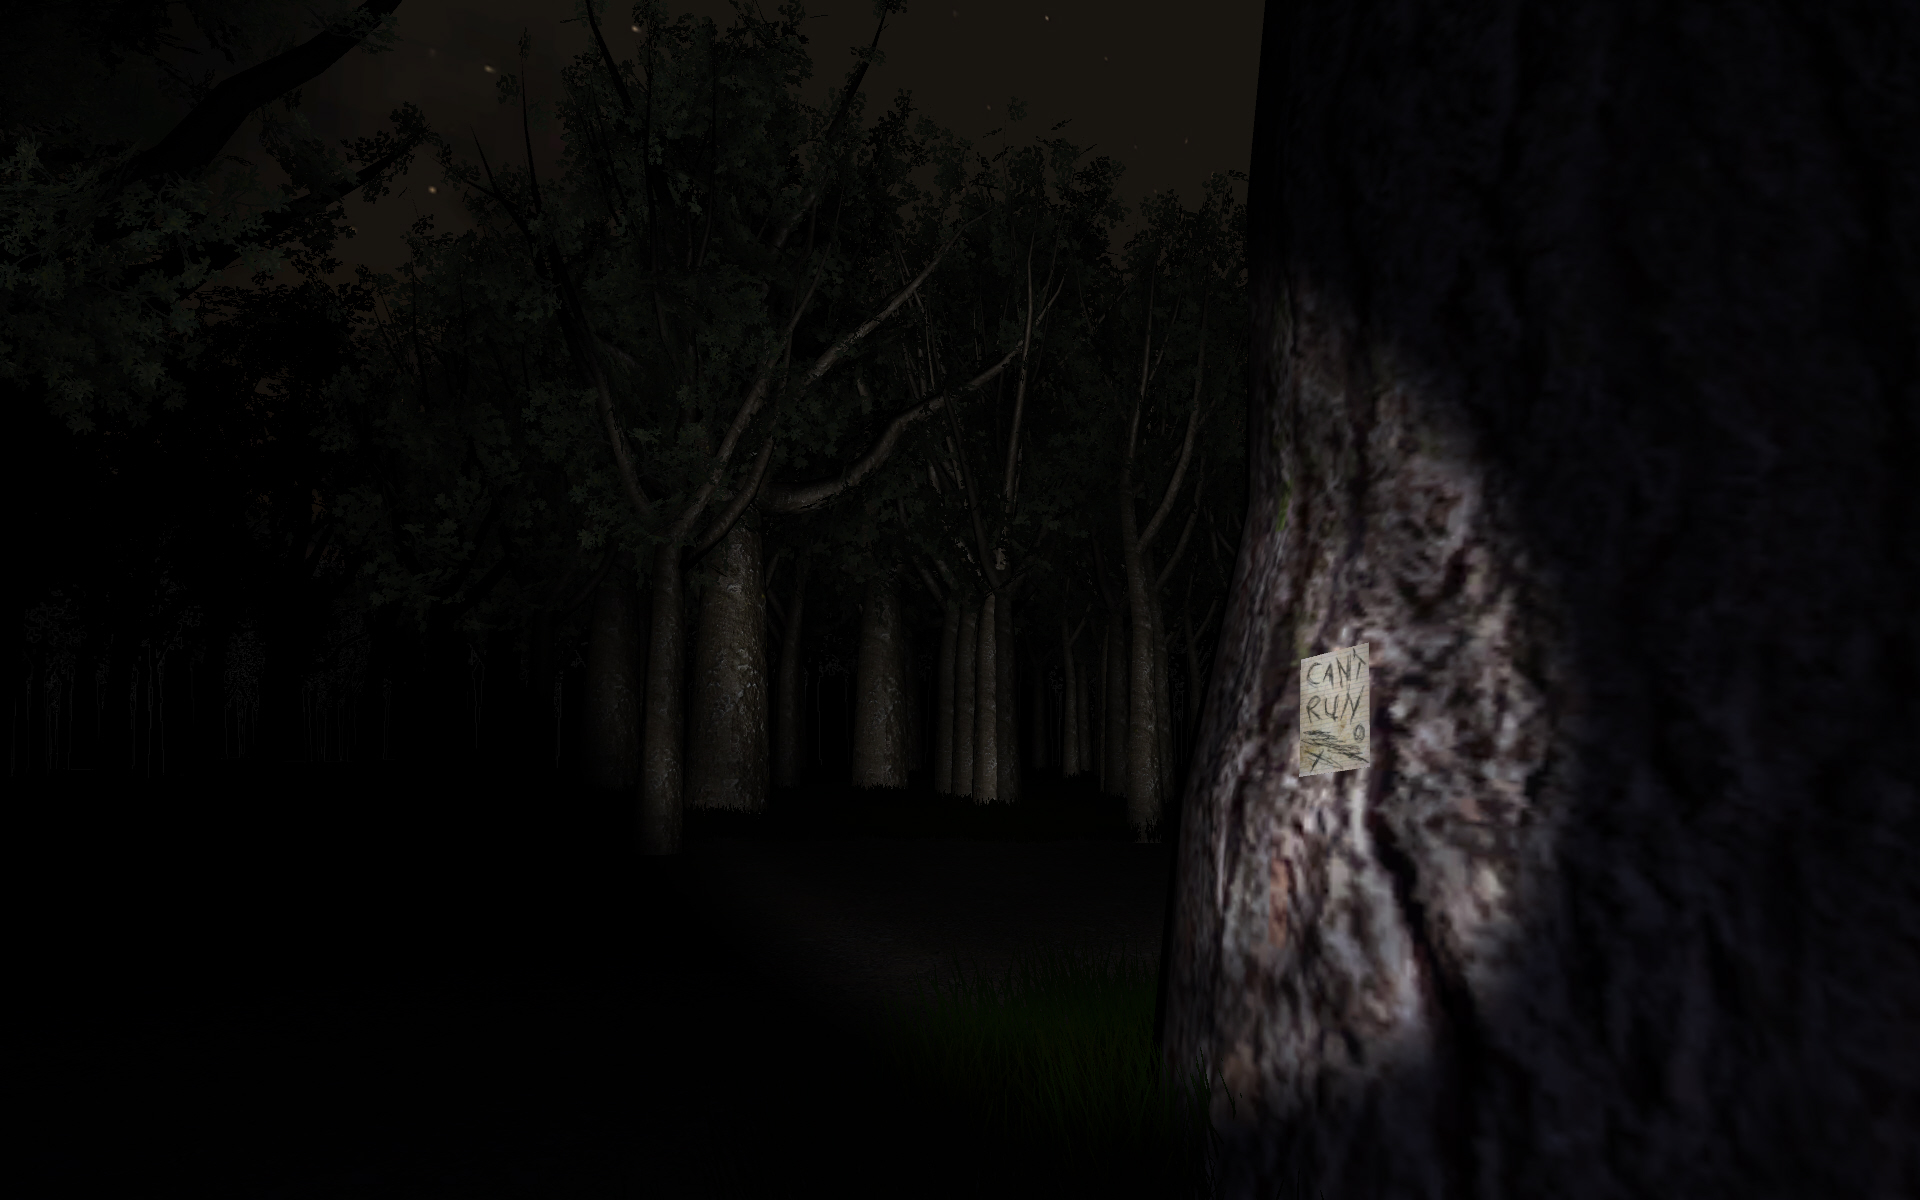 Play Slender (3D), a free online game on Kongregate